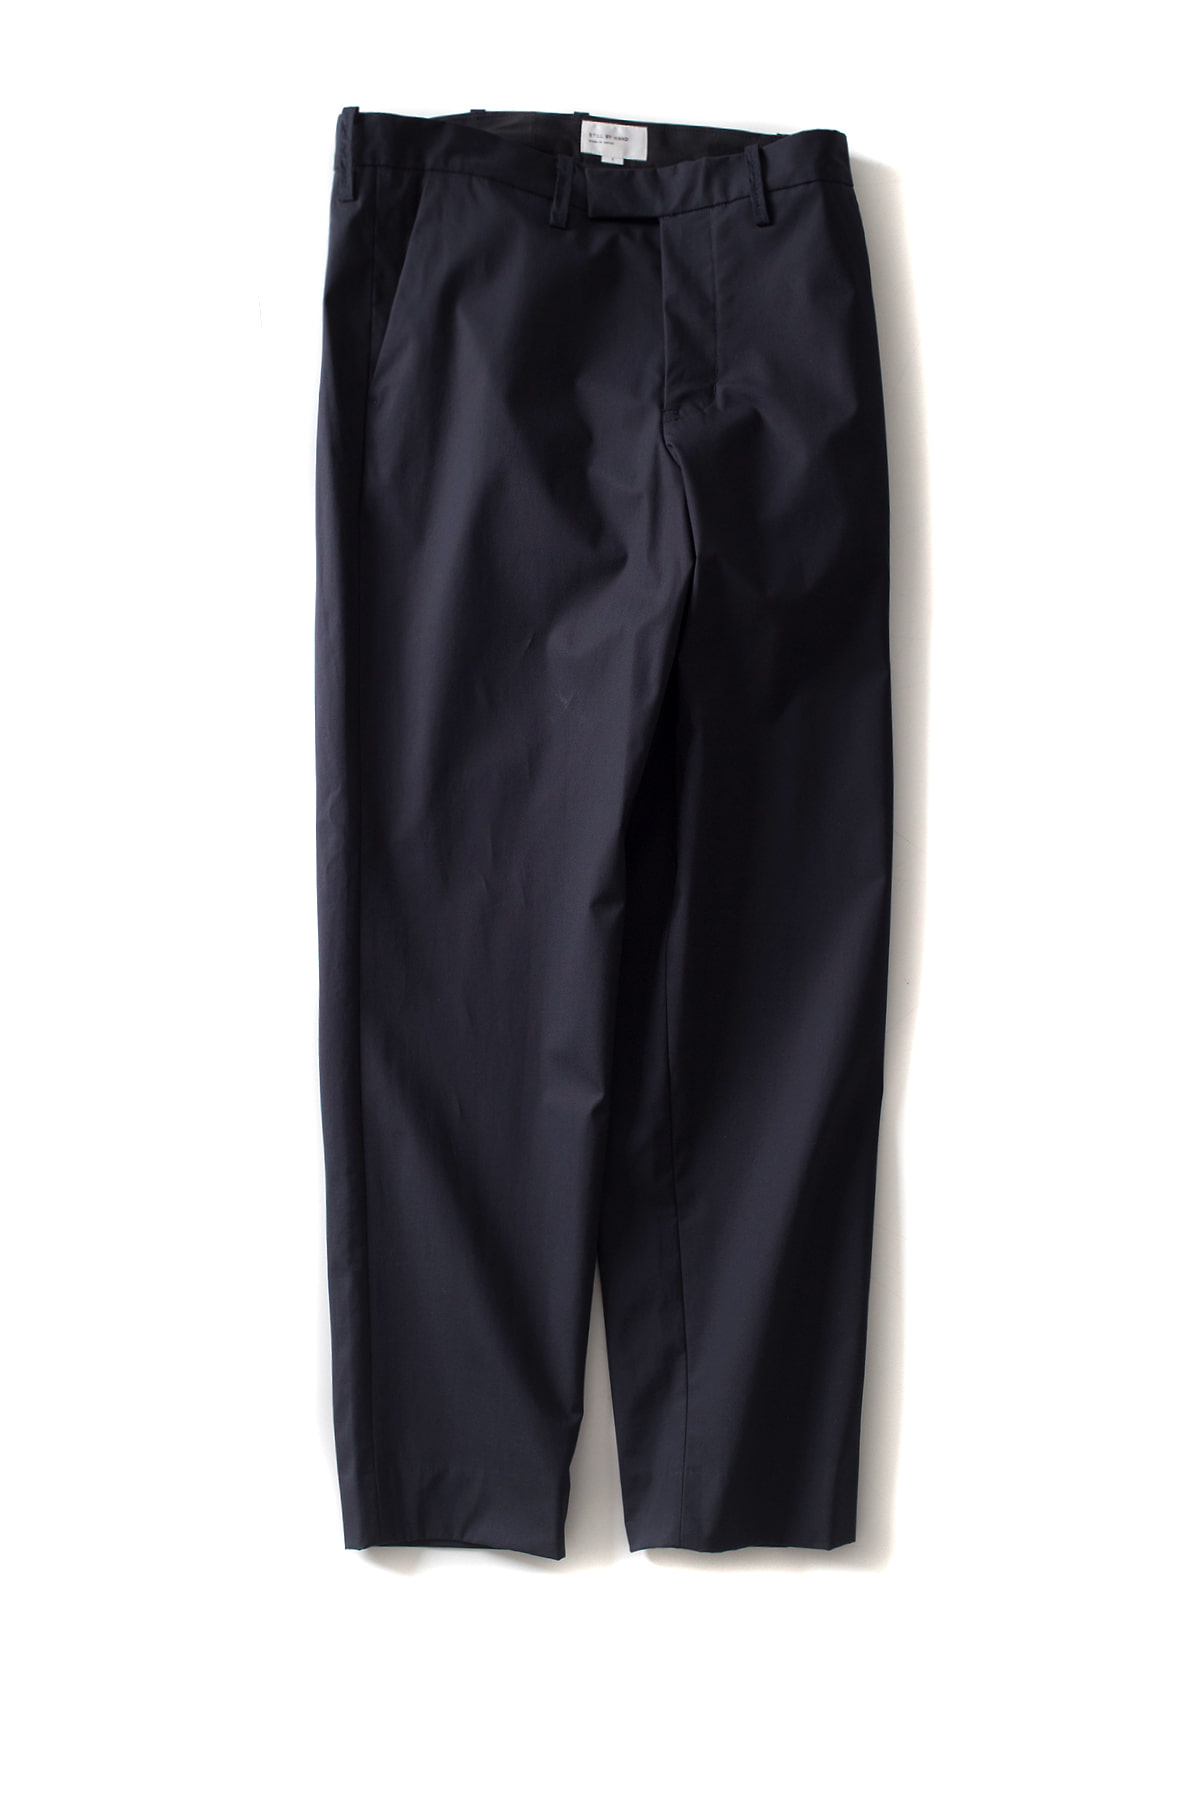 Still by Hand : Bonded Pants (Navy)